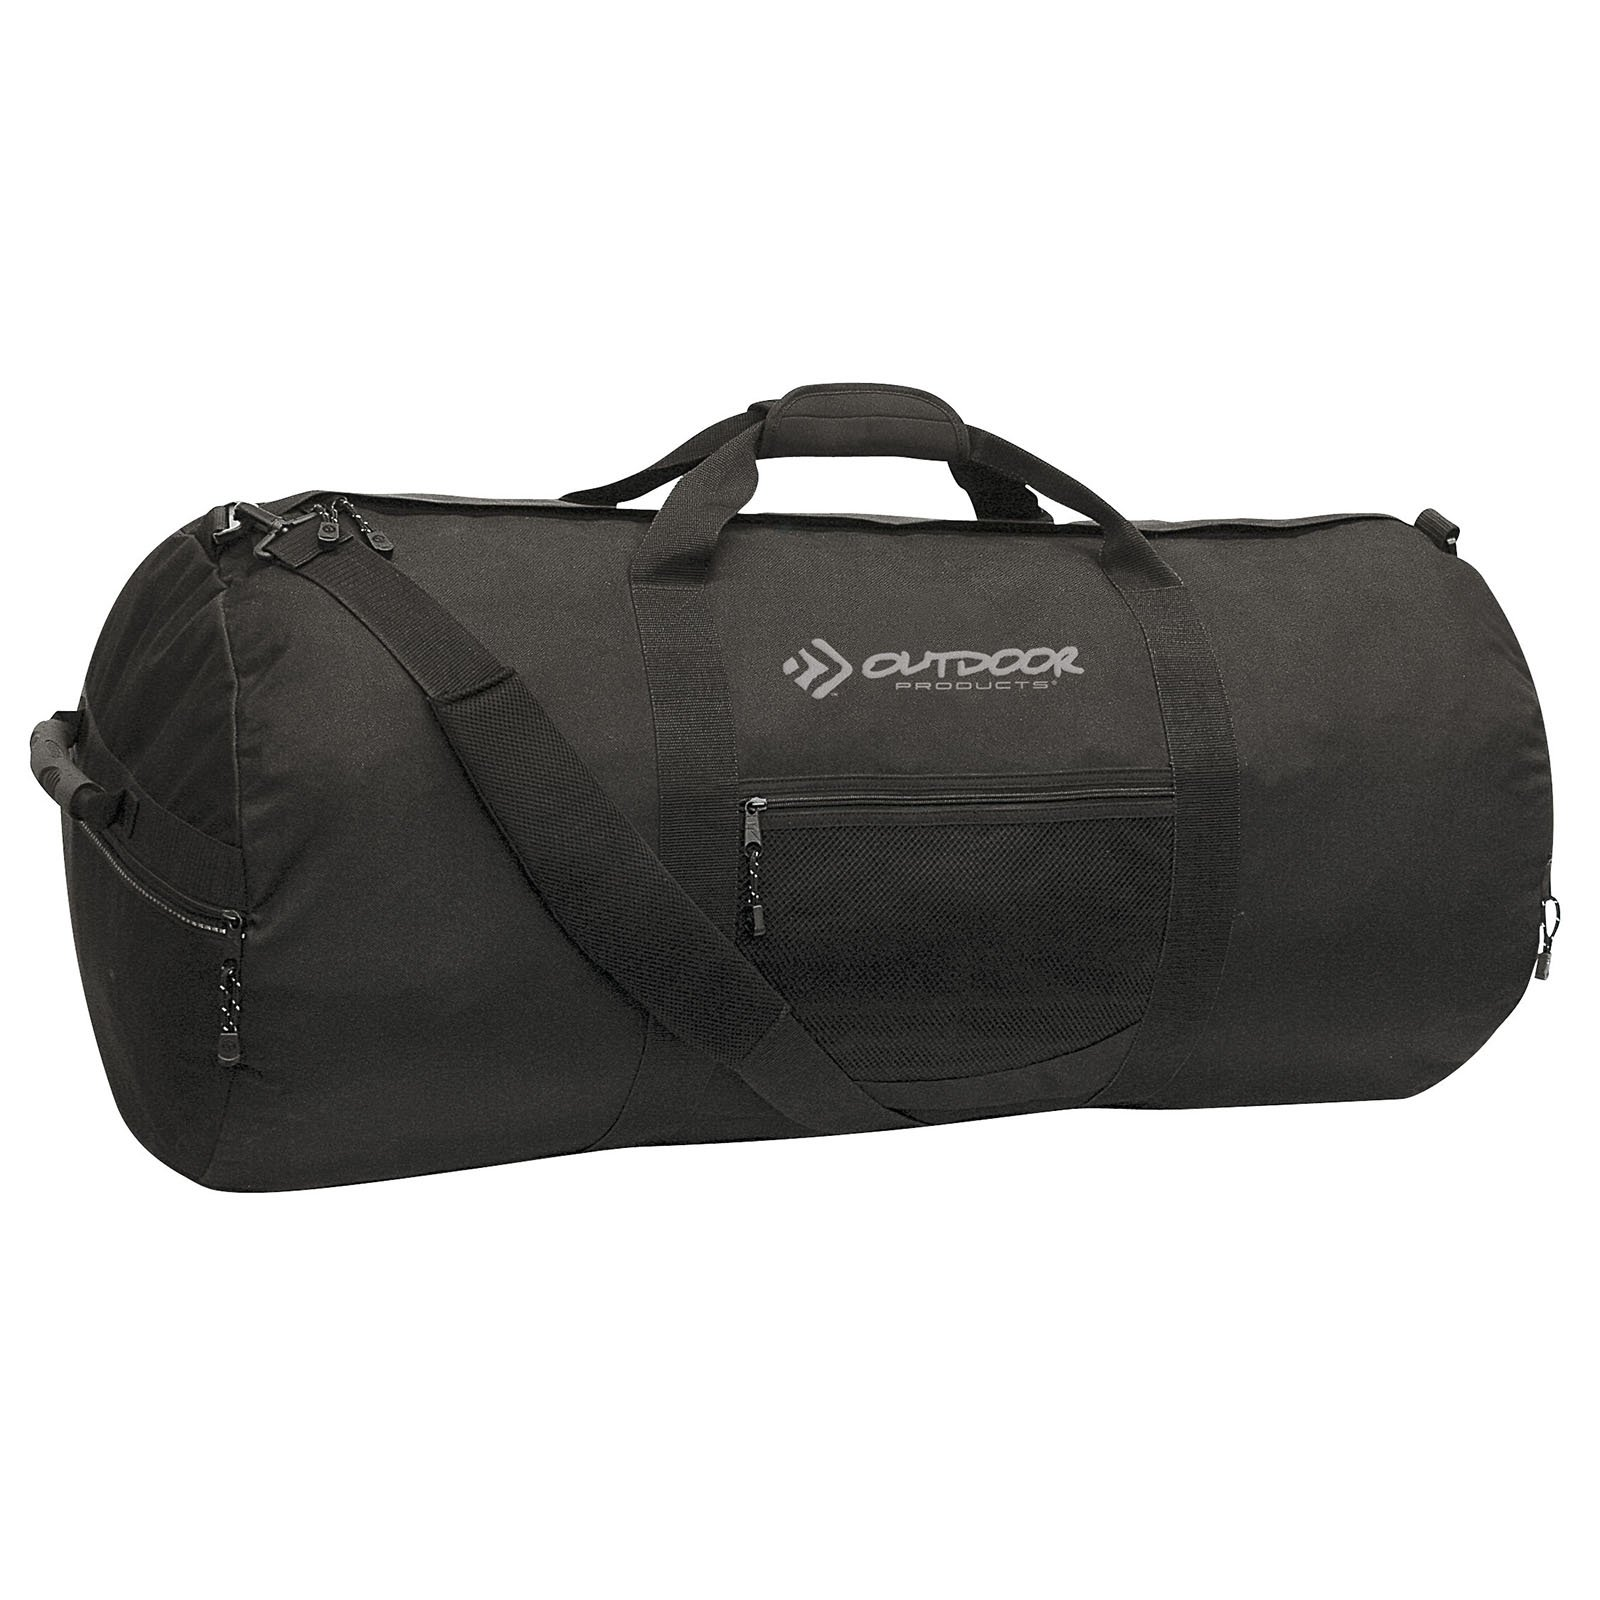 Outdoor Products Giant Utility Duffle by Outdoor Products